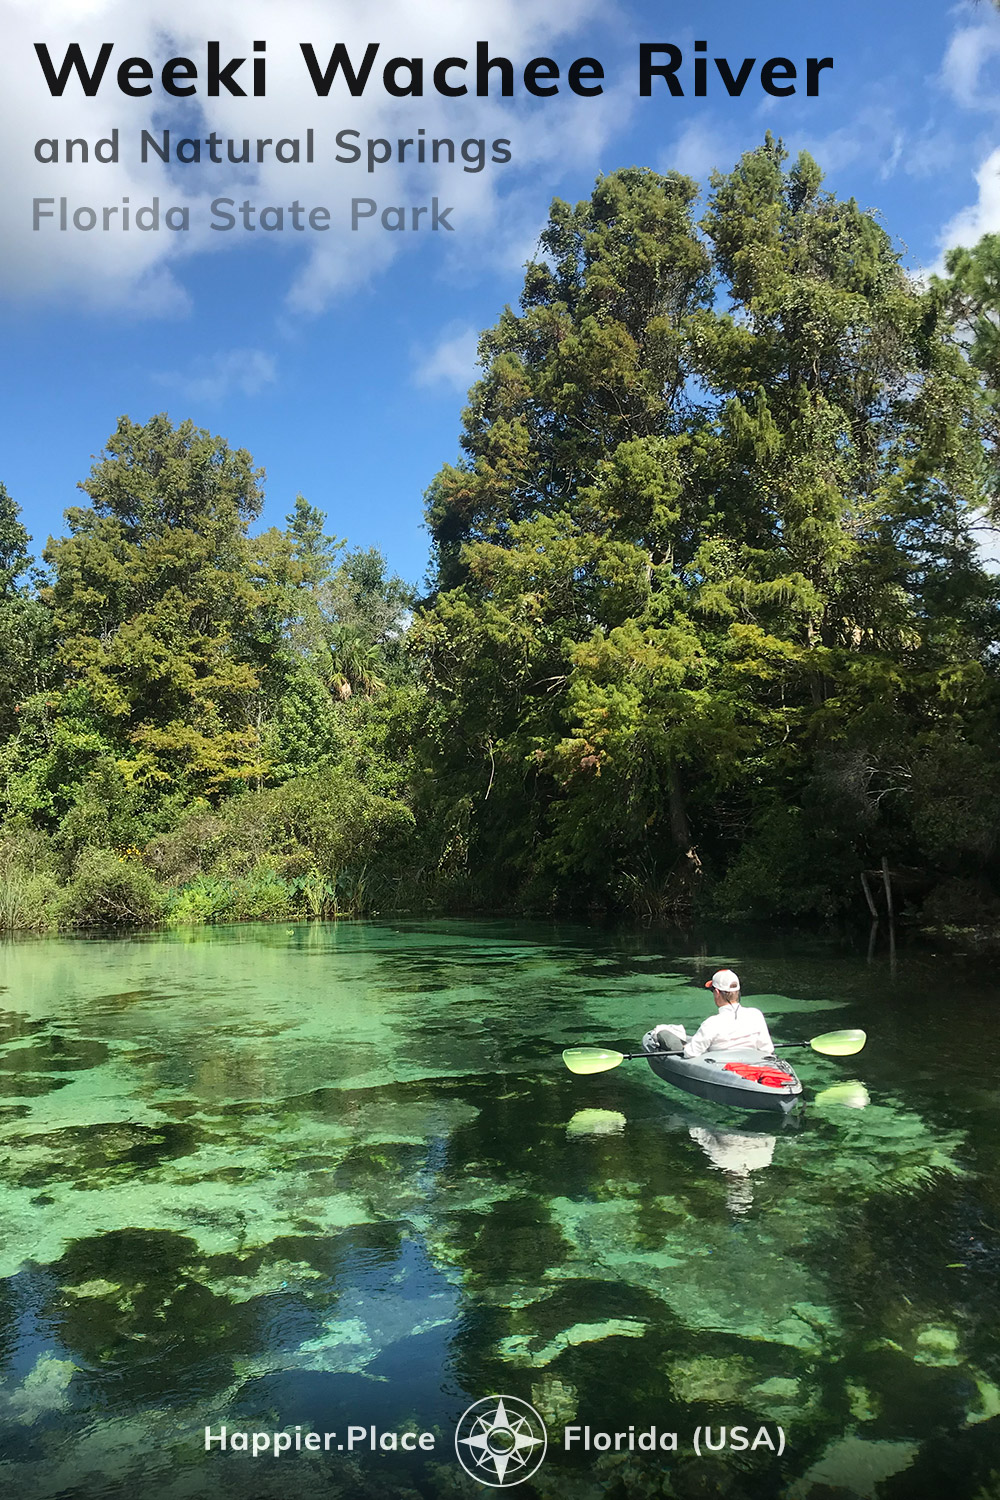 Kayaking down the Weeki Wachee River and having fun at the Weeki Wachee Springs State Park in Florida